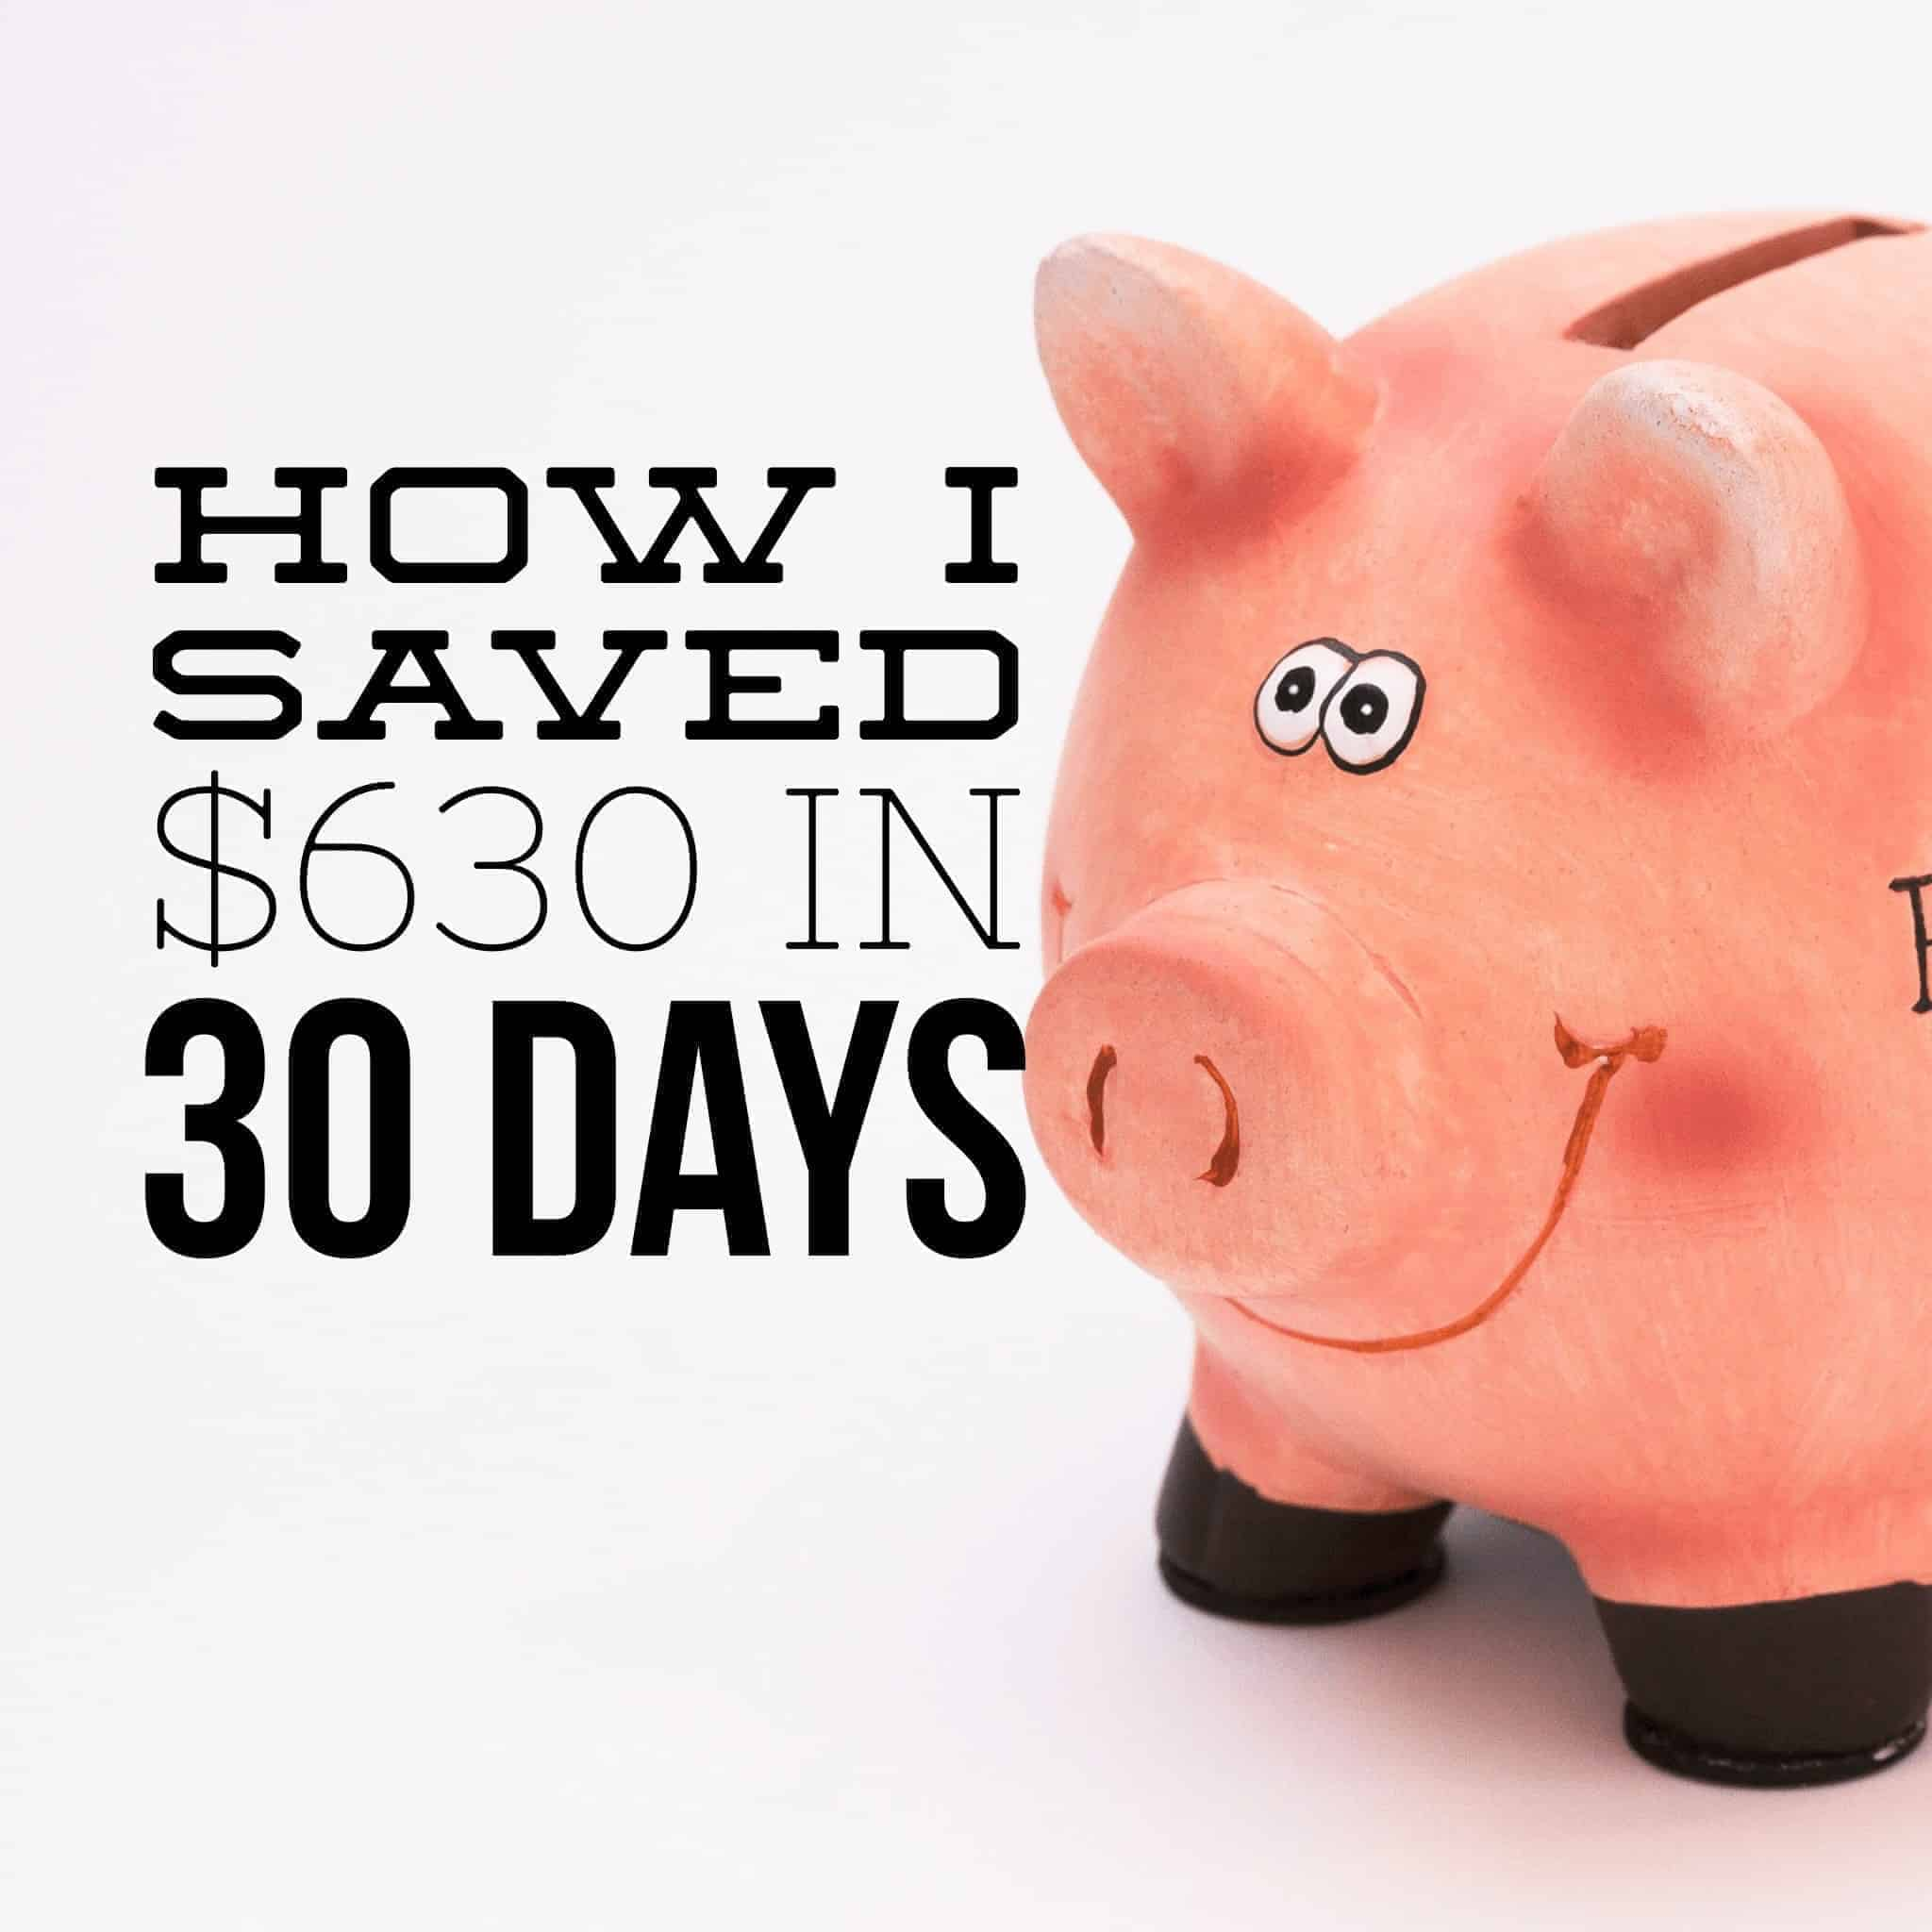 How I Saved $630 in 30 Days